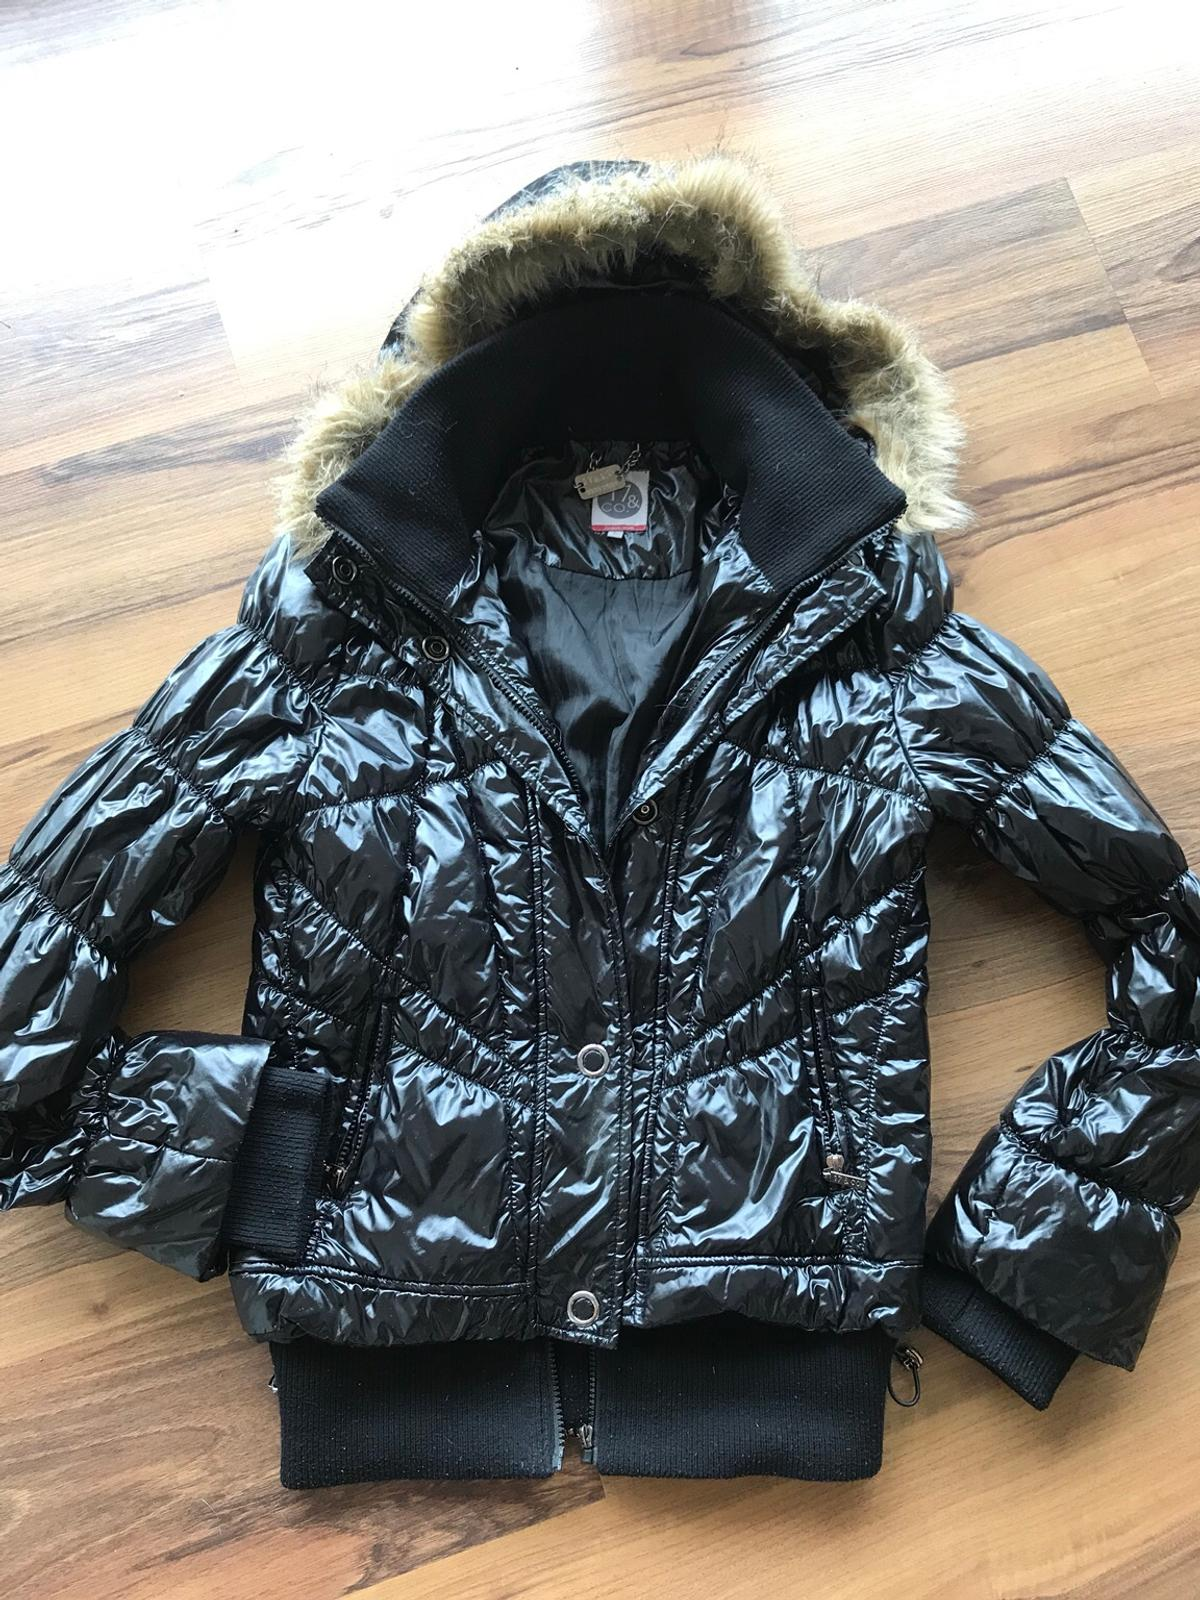 Winterjacke 17&Co, schwarz